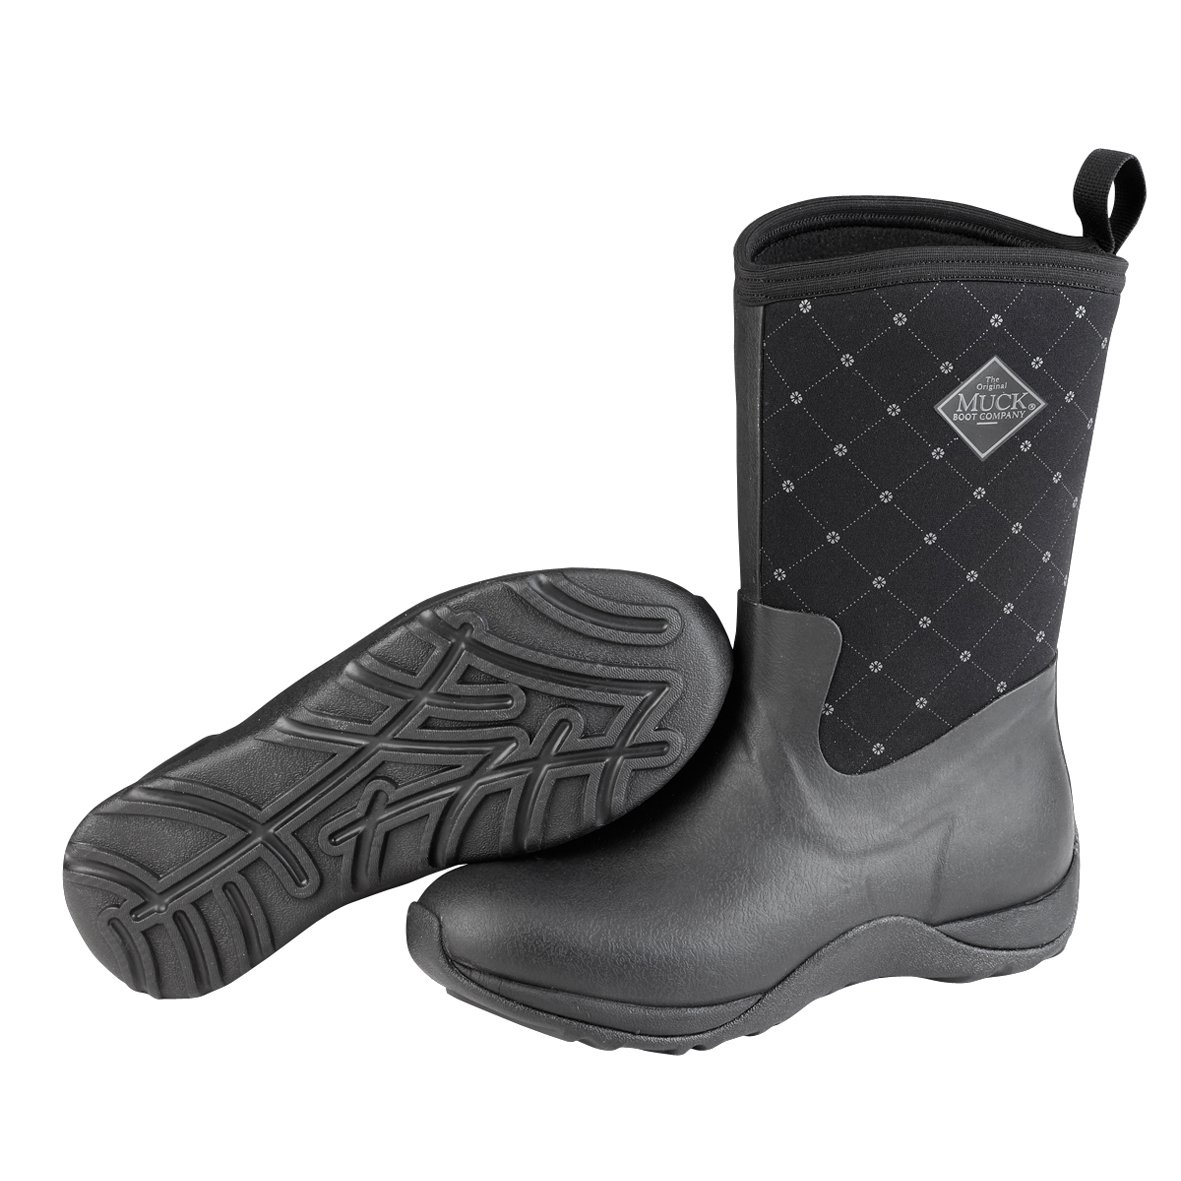 Muck Boot Women's Arctic Weekend Mid Snow B01J6MC97O 11 B(M) US|Black Quilt